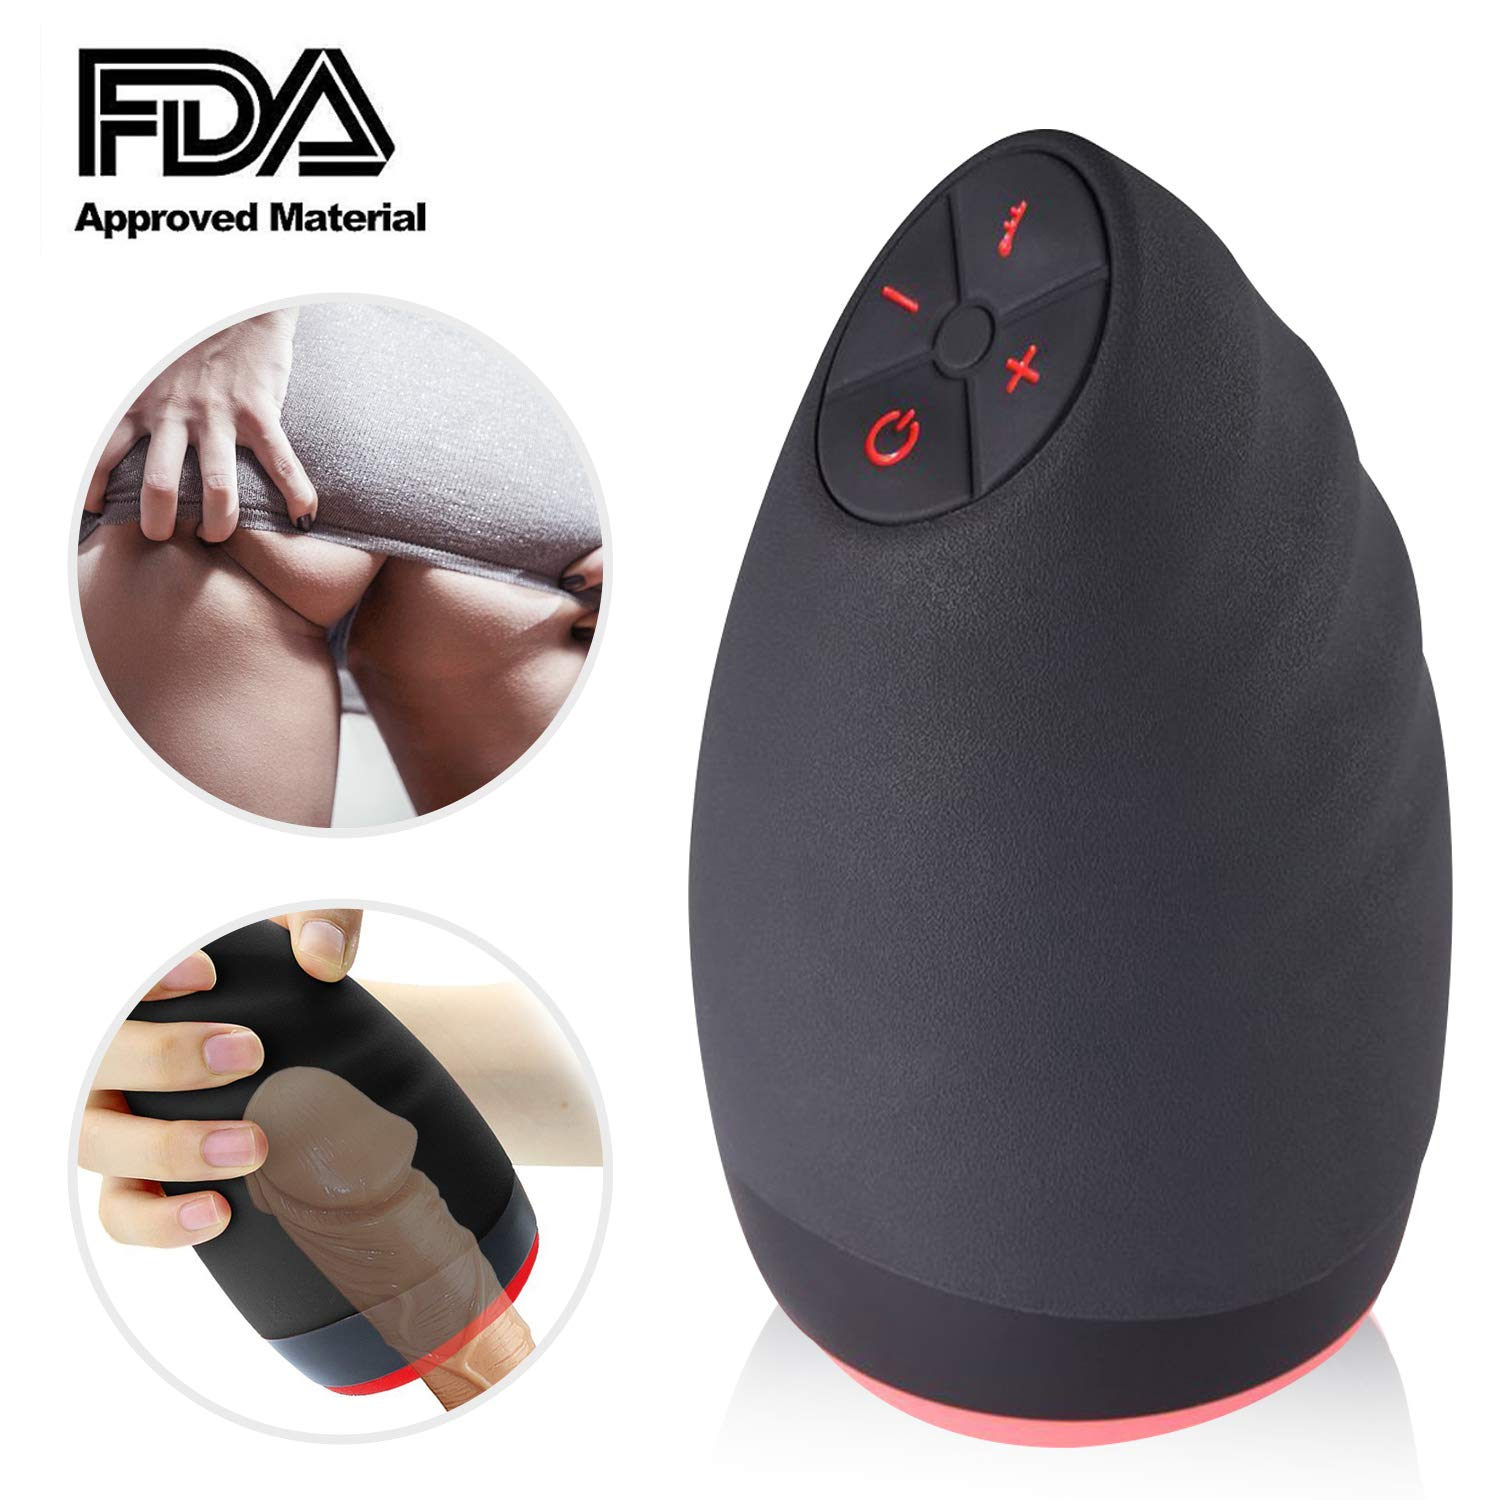 Male Full Automatic Cup Sucking Electronic Man's Toy Mini Massage Cup Best Gift jiyougsi